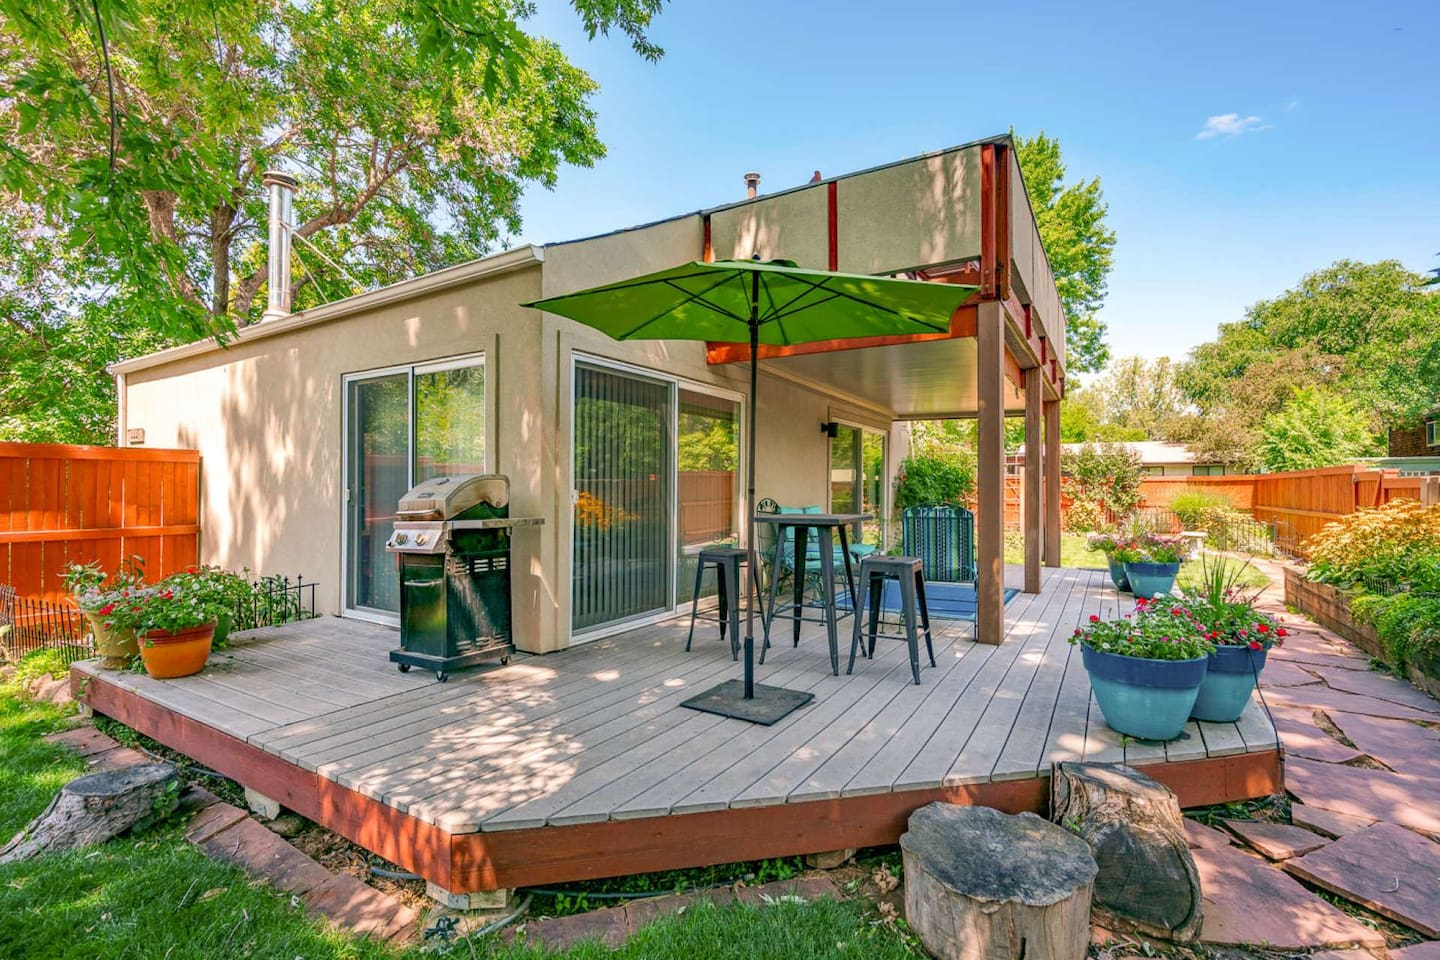 Spacious, well-manicured backyard/deck perfect for lounging after a day of work or adventures.